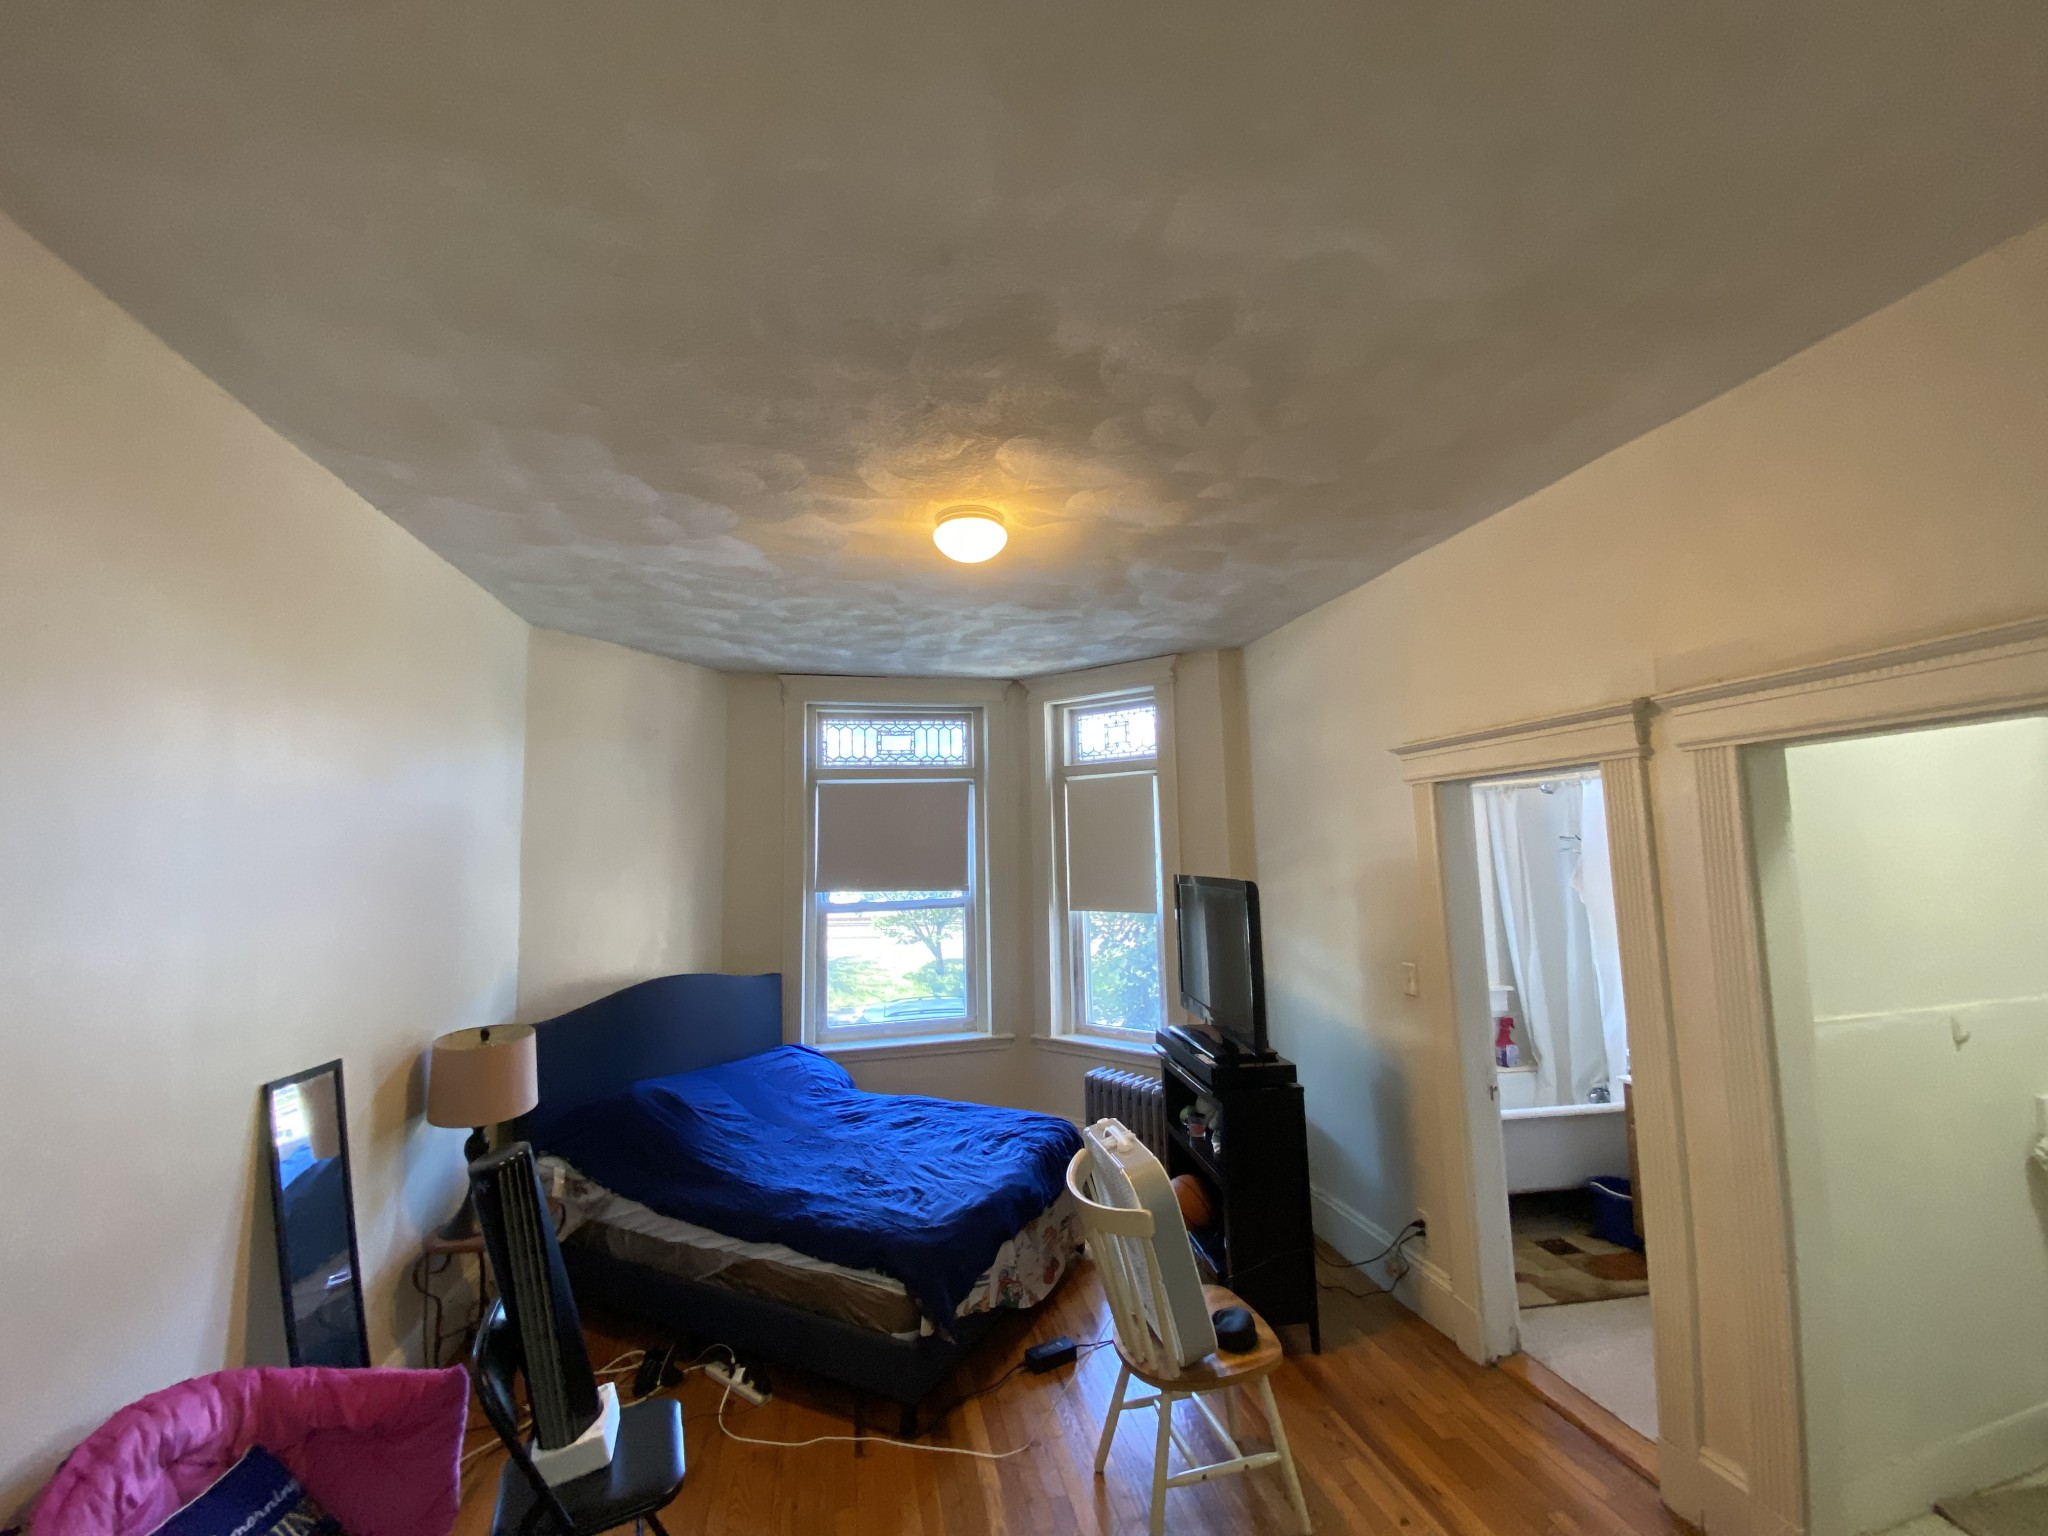 Studio, 1 Bath apartment in Boston, Allston for $1,550